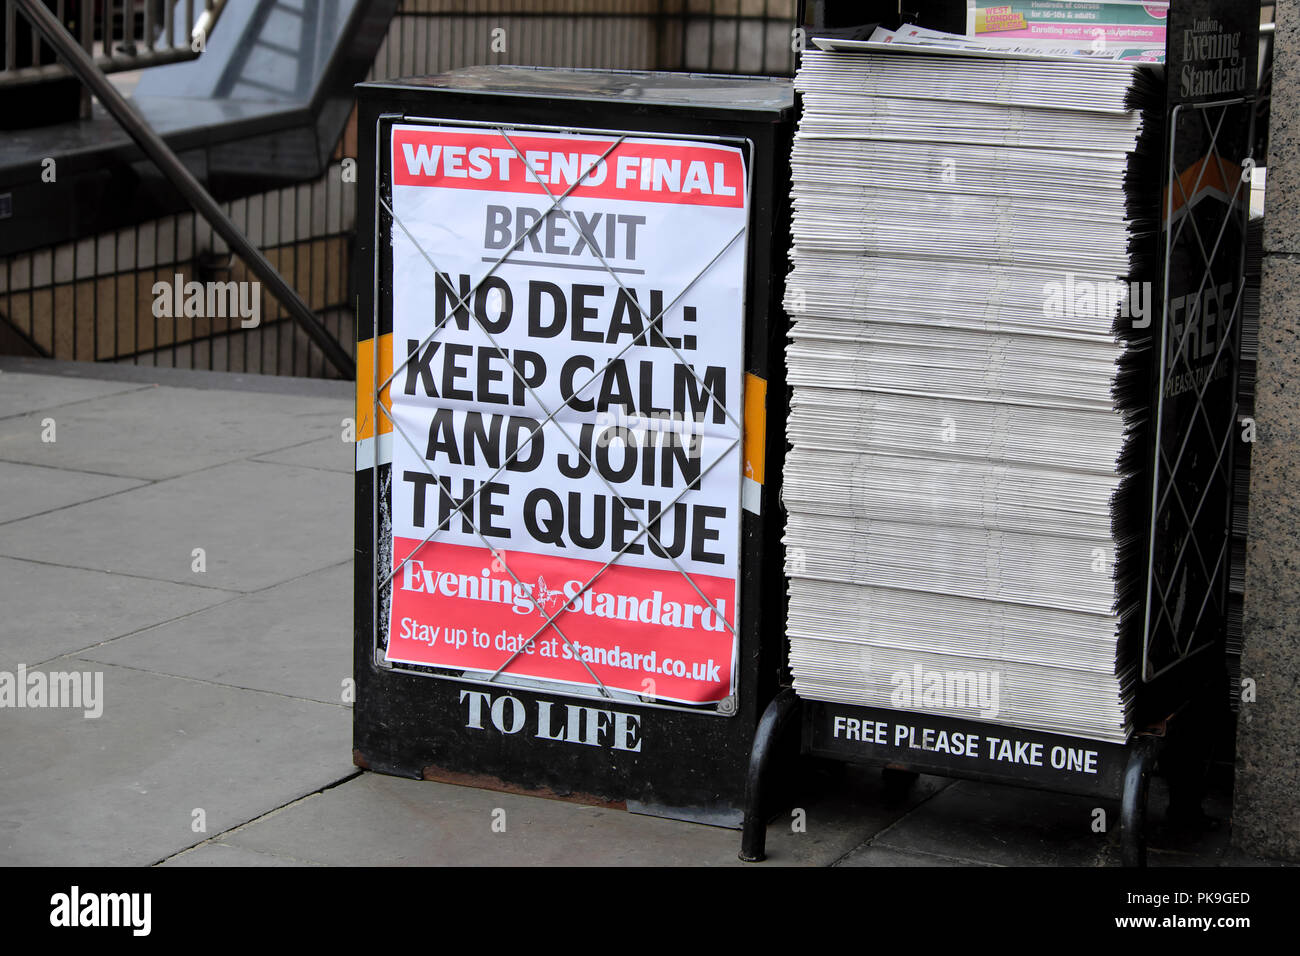 Evening Standard newspaper headline on poster 'Brexit - NO DEAL KEEP CALM AND JOIN THE QUEUE'   23 August 2018 in London, England UK - Stock Image